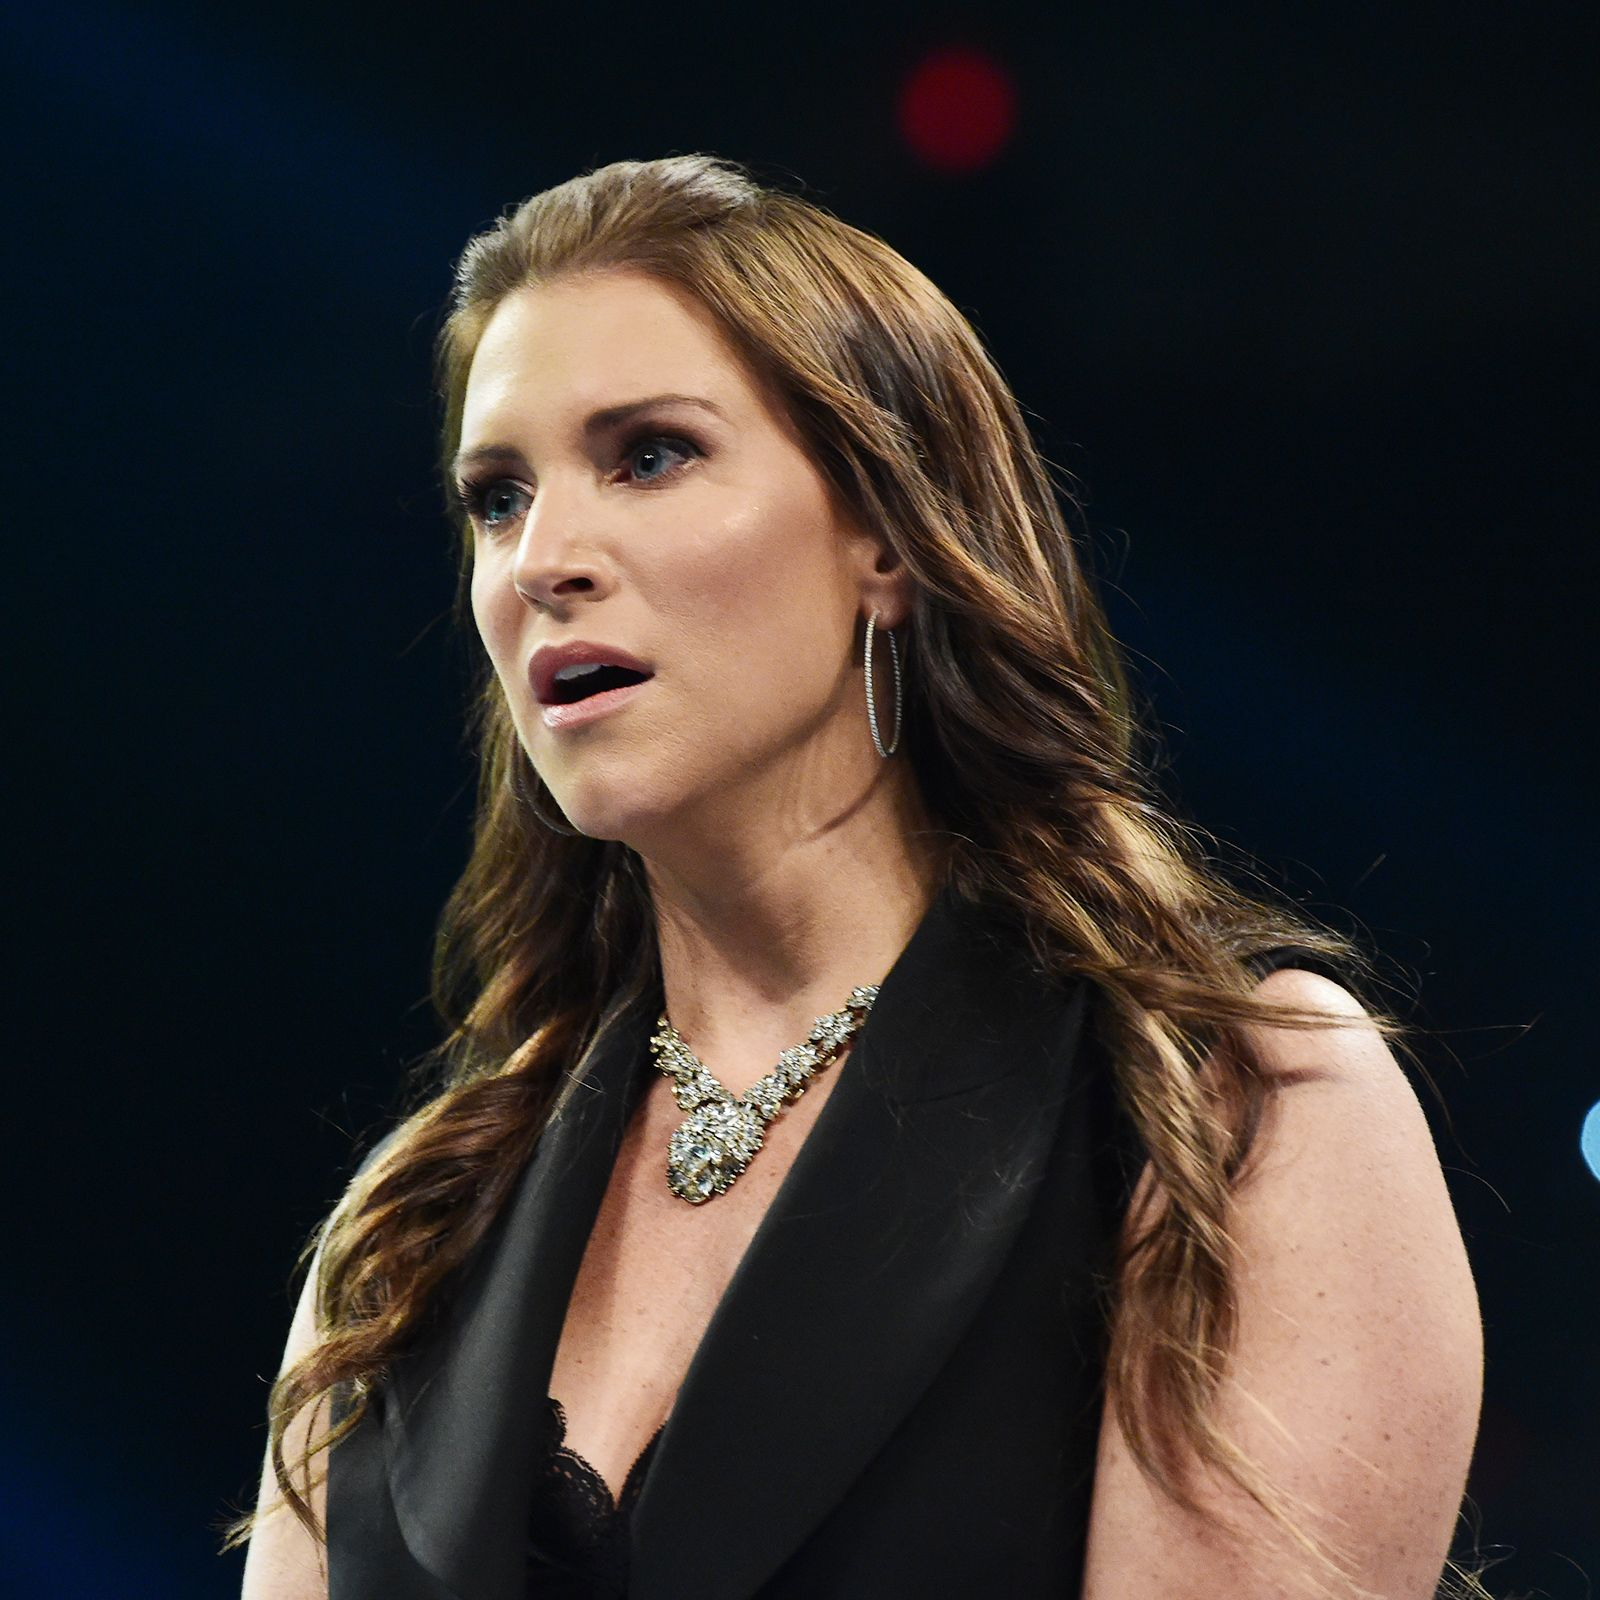 Stephanie McMahon Is Announced As The New Commissioner Of